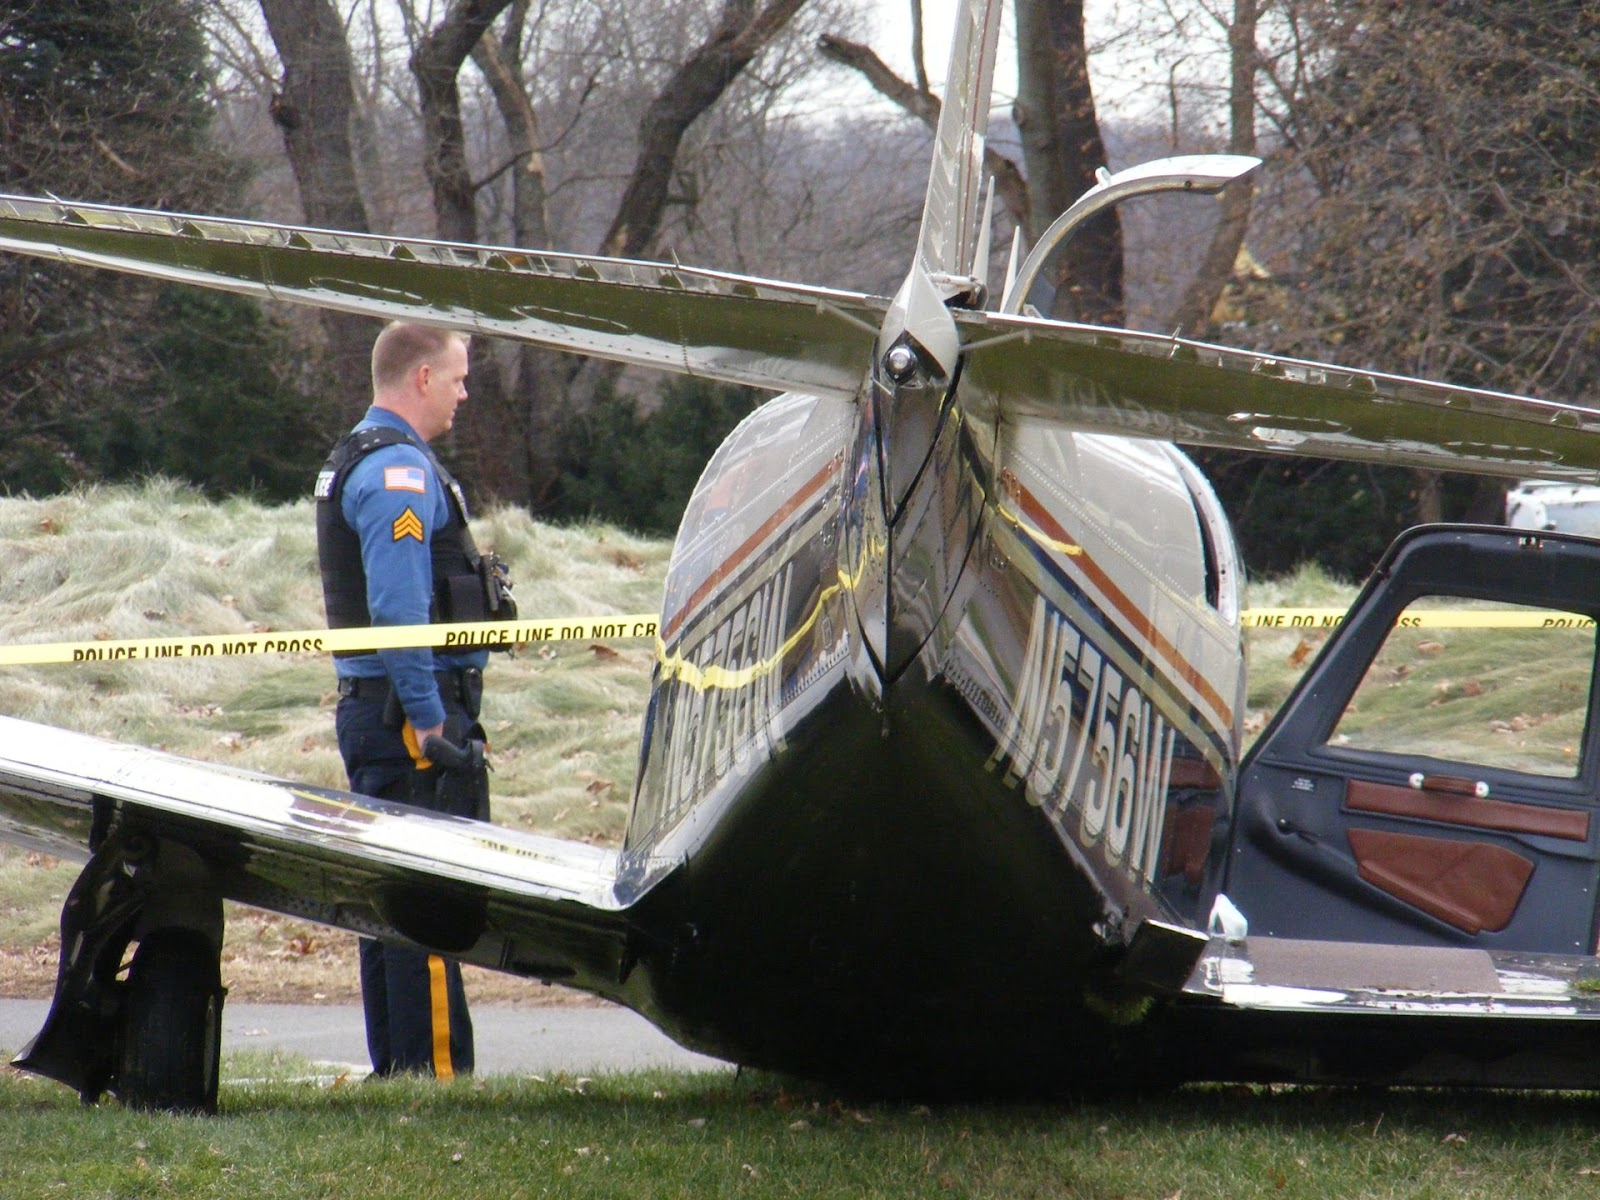 Kathryn's Report: Mooney M20K 231, N5756W: Accident occurred